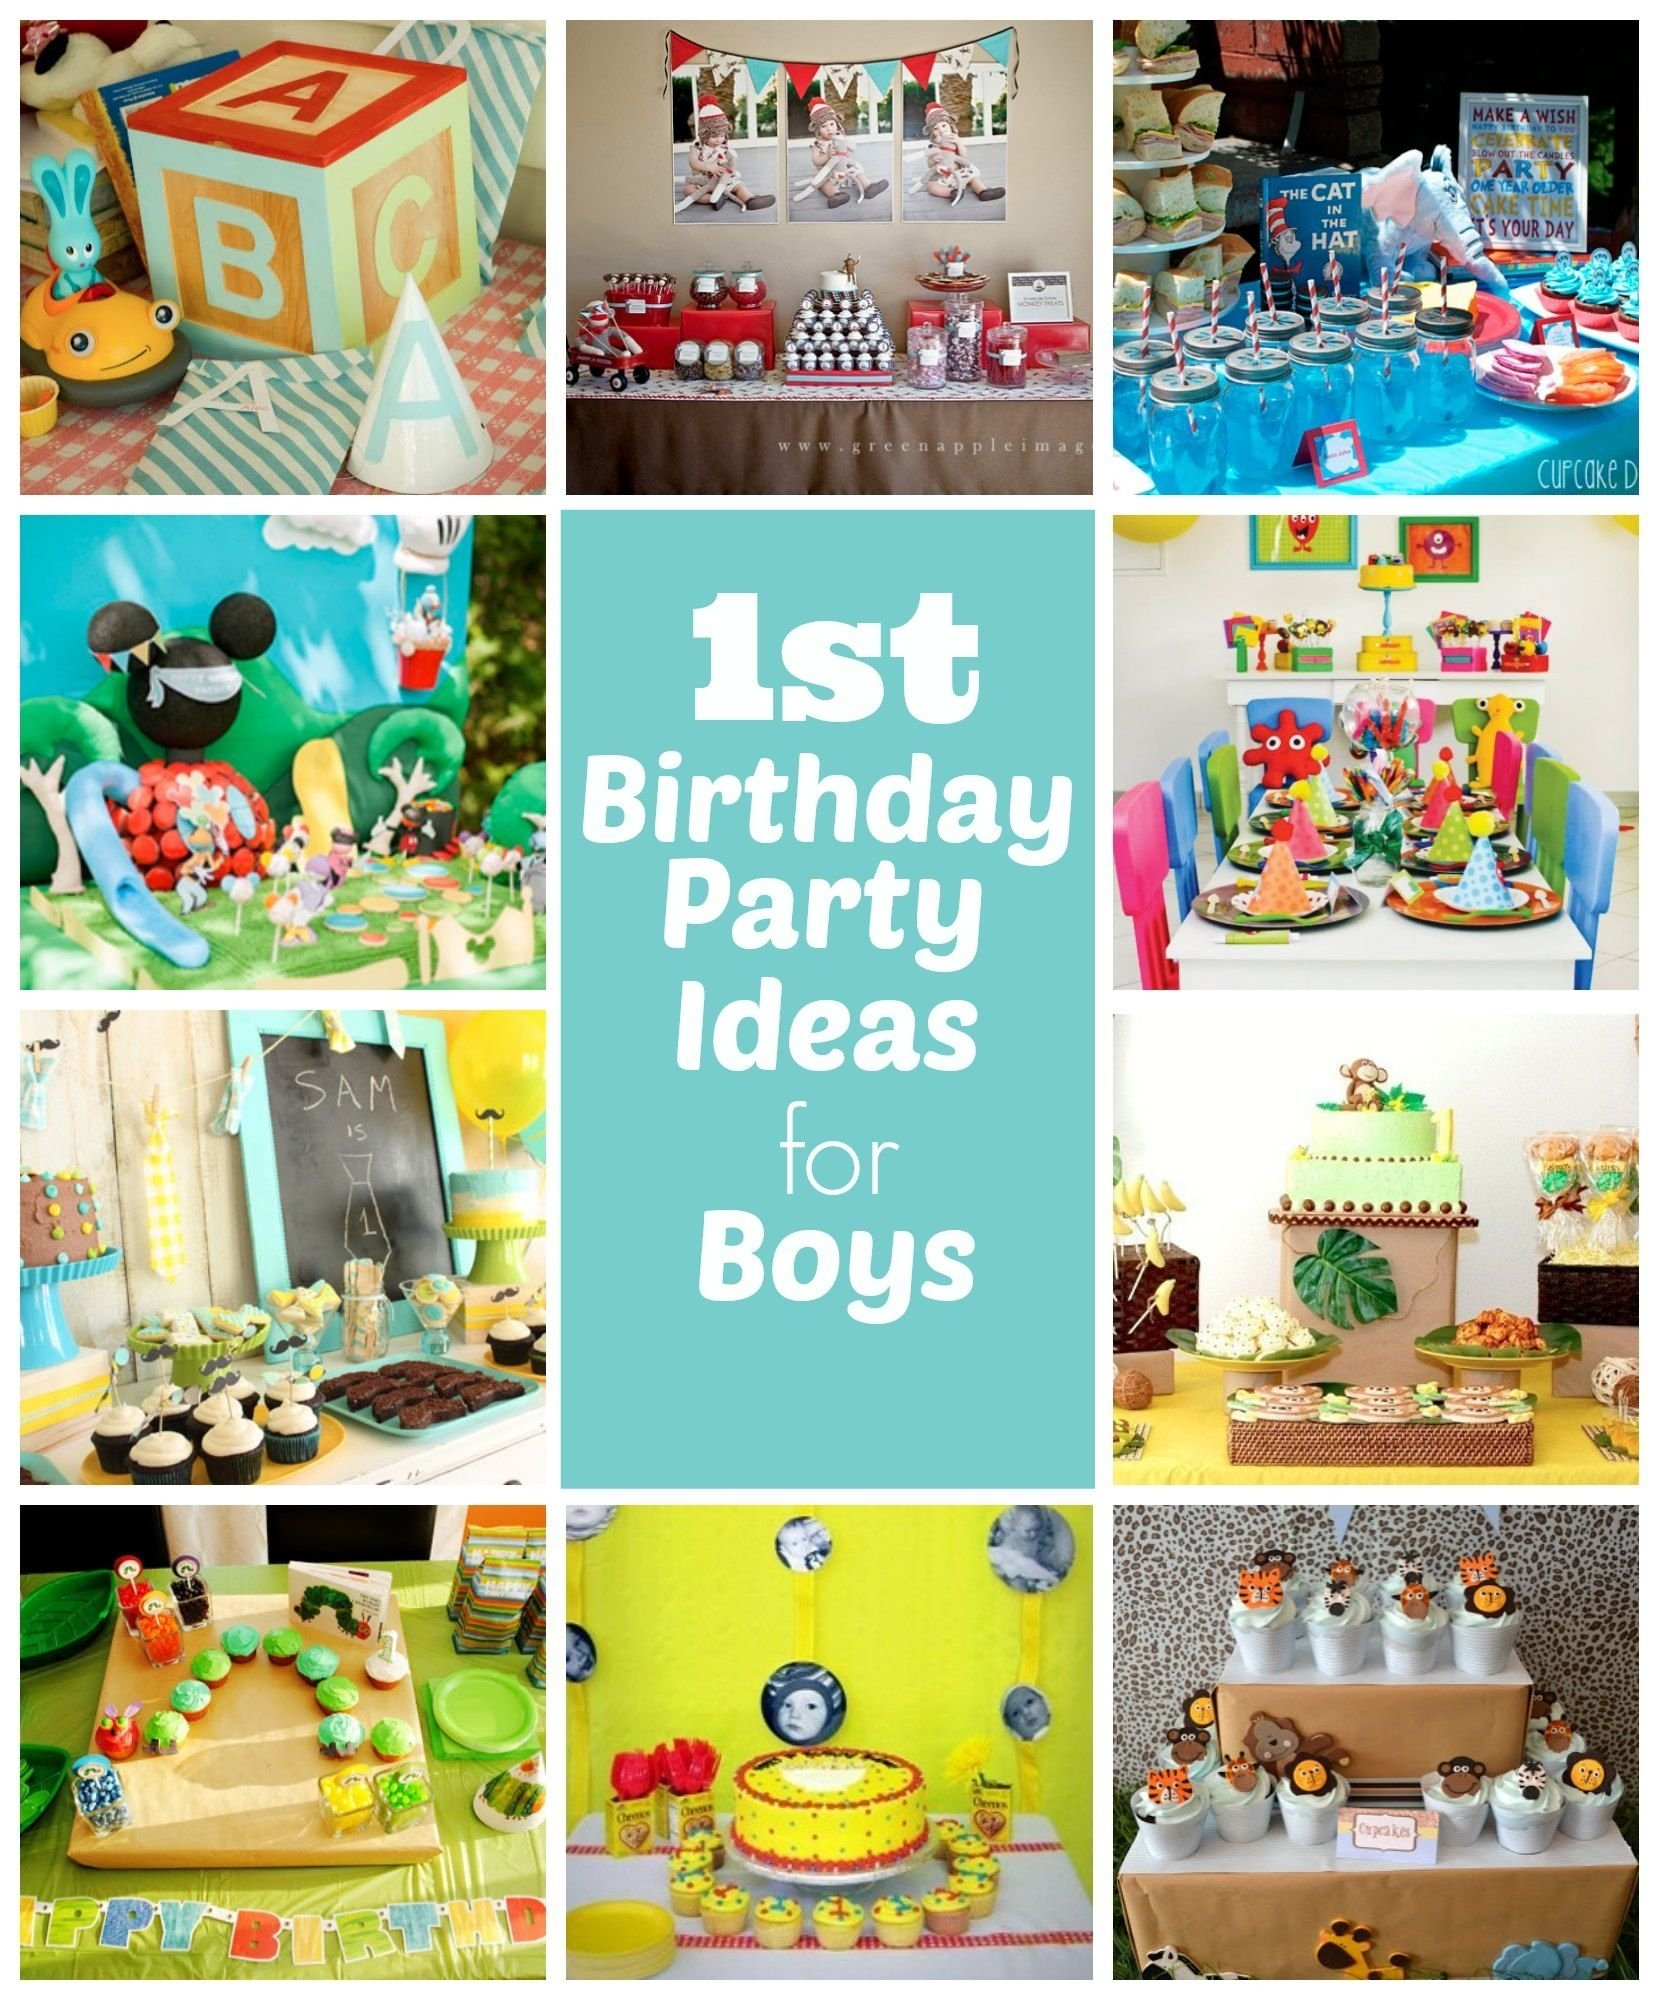 10 Most Popular Unique First Birthday Party Ideas For Boys pinright start on birthday parties pinterest safari theme